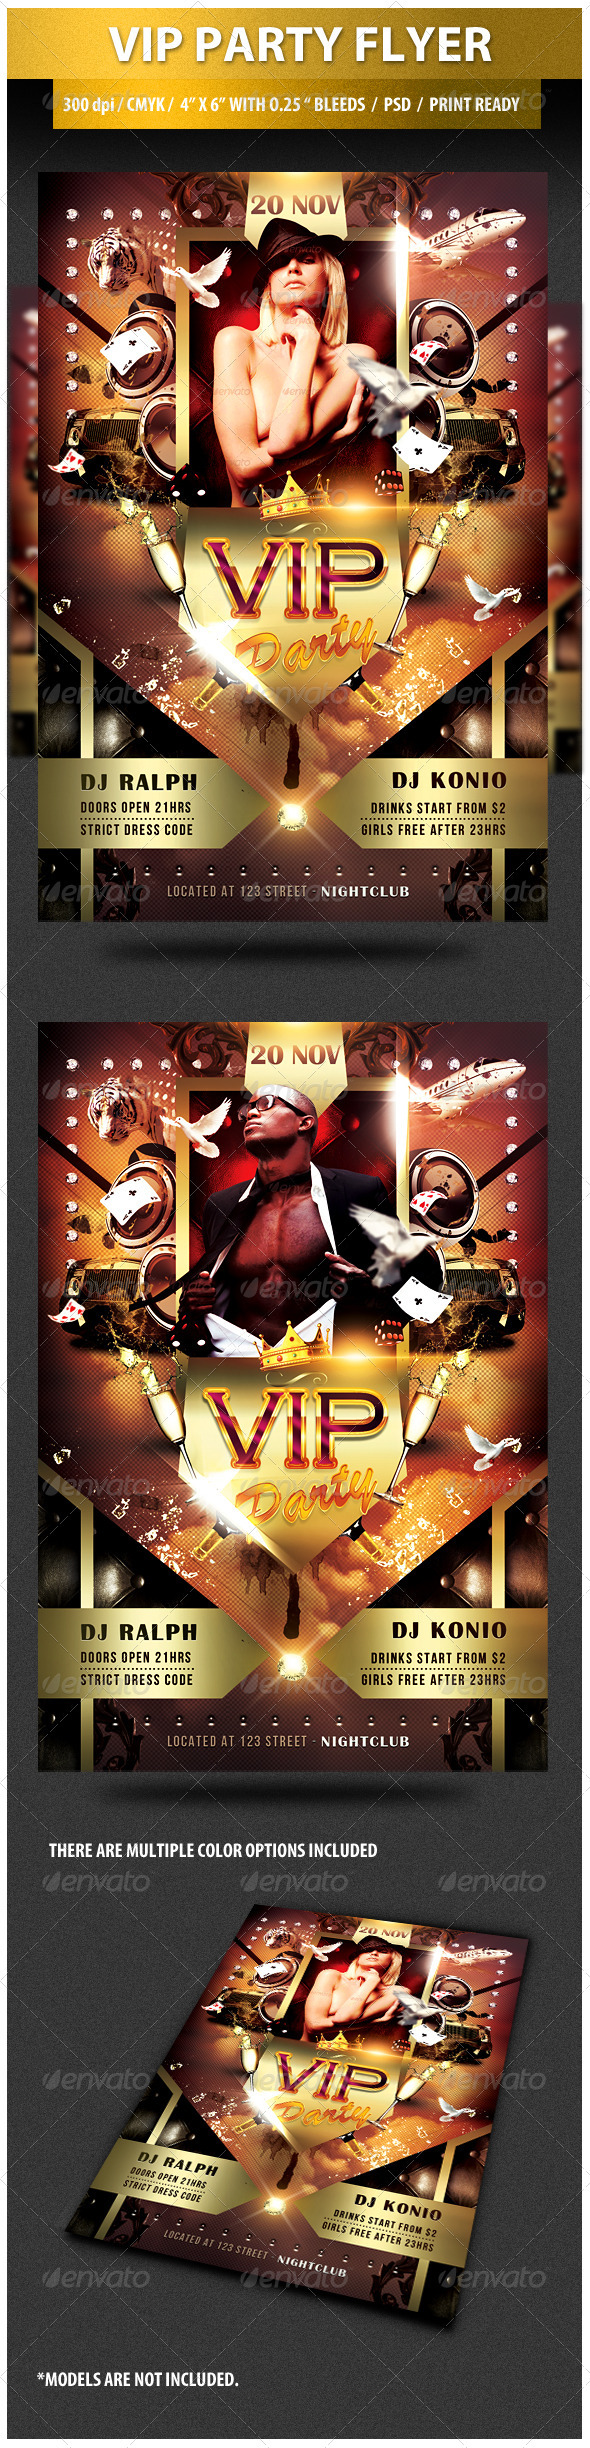 VIP Party Flyer - 2 - Concerts Events